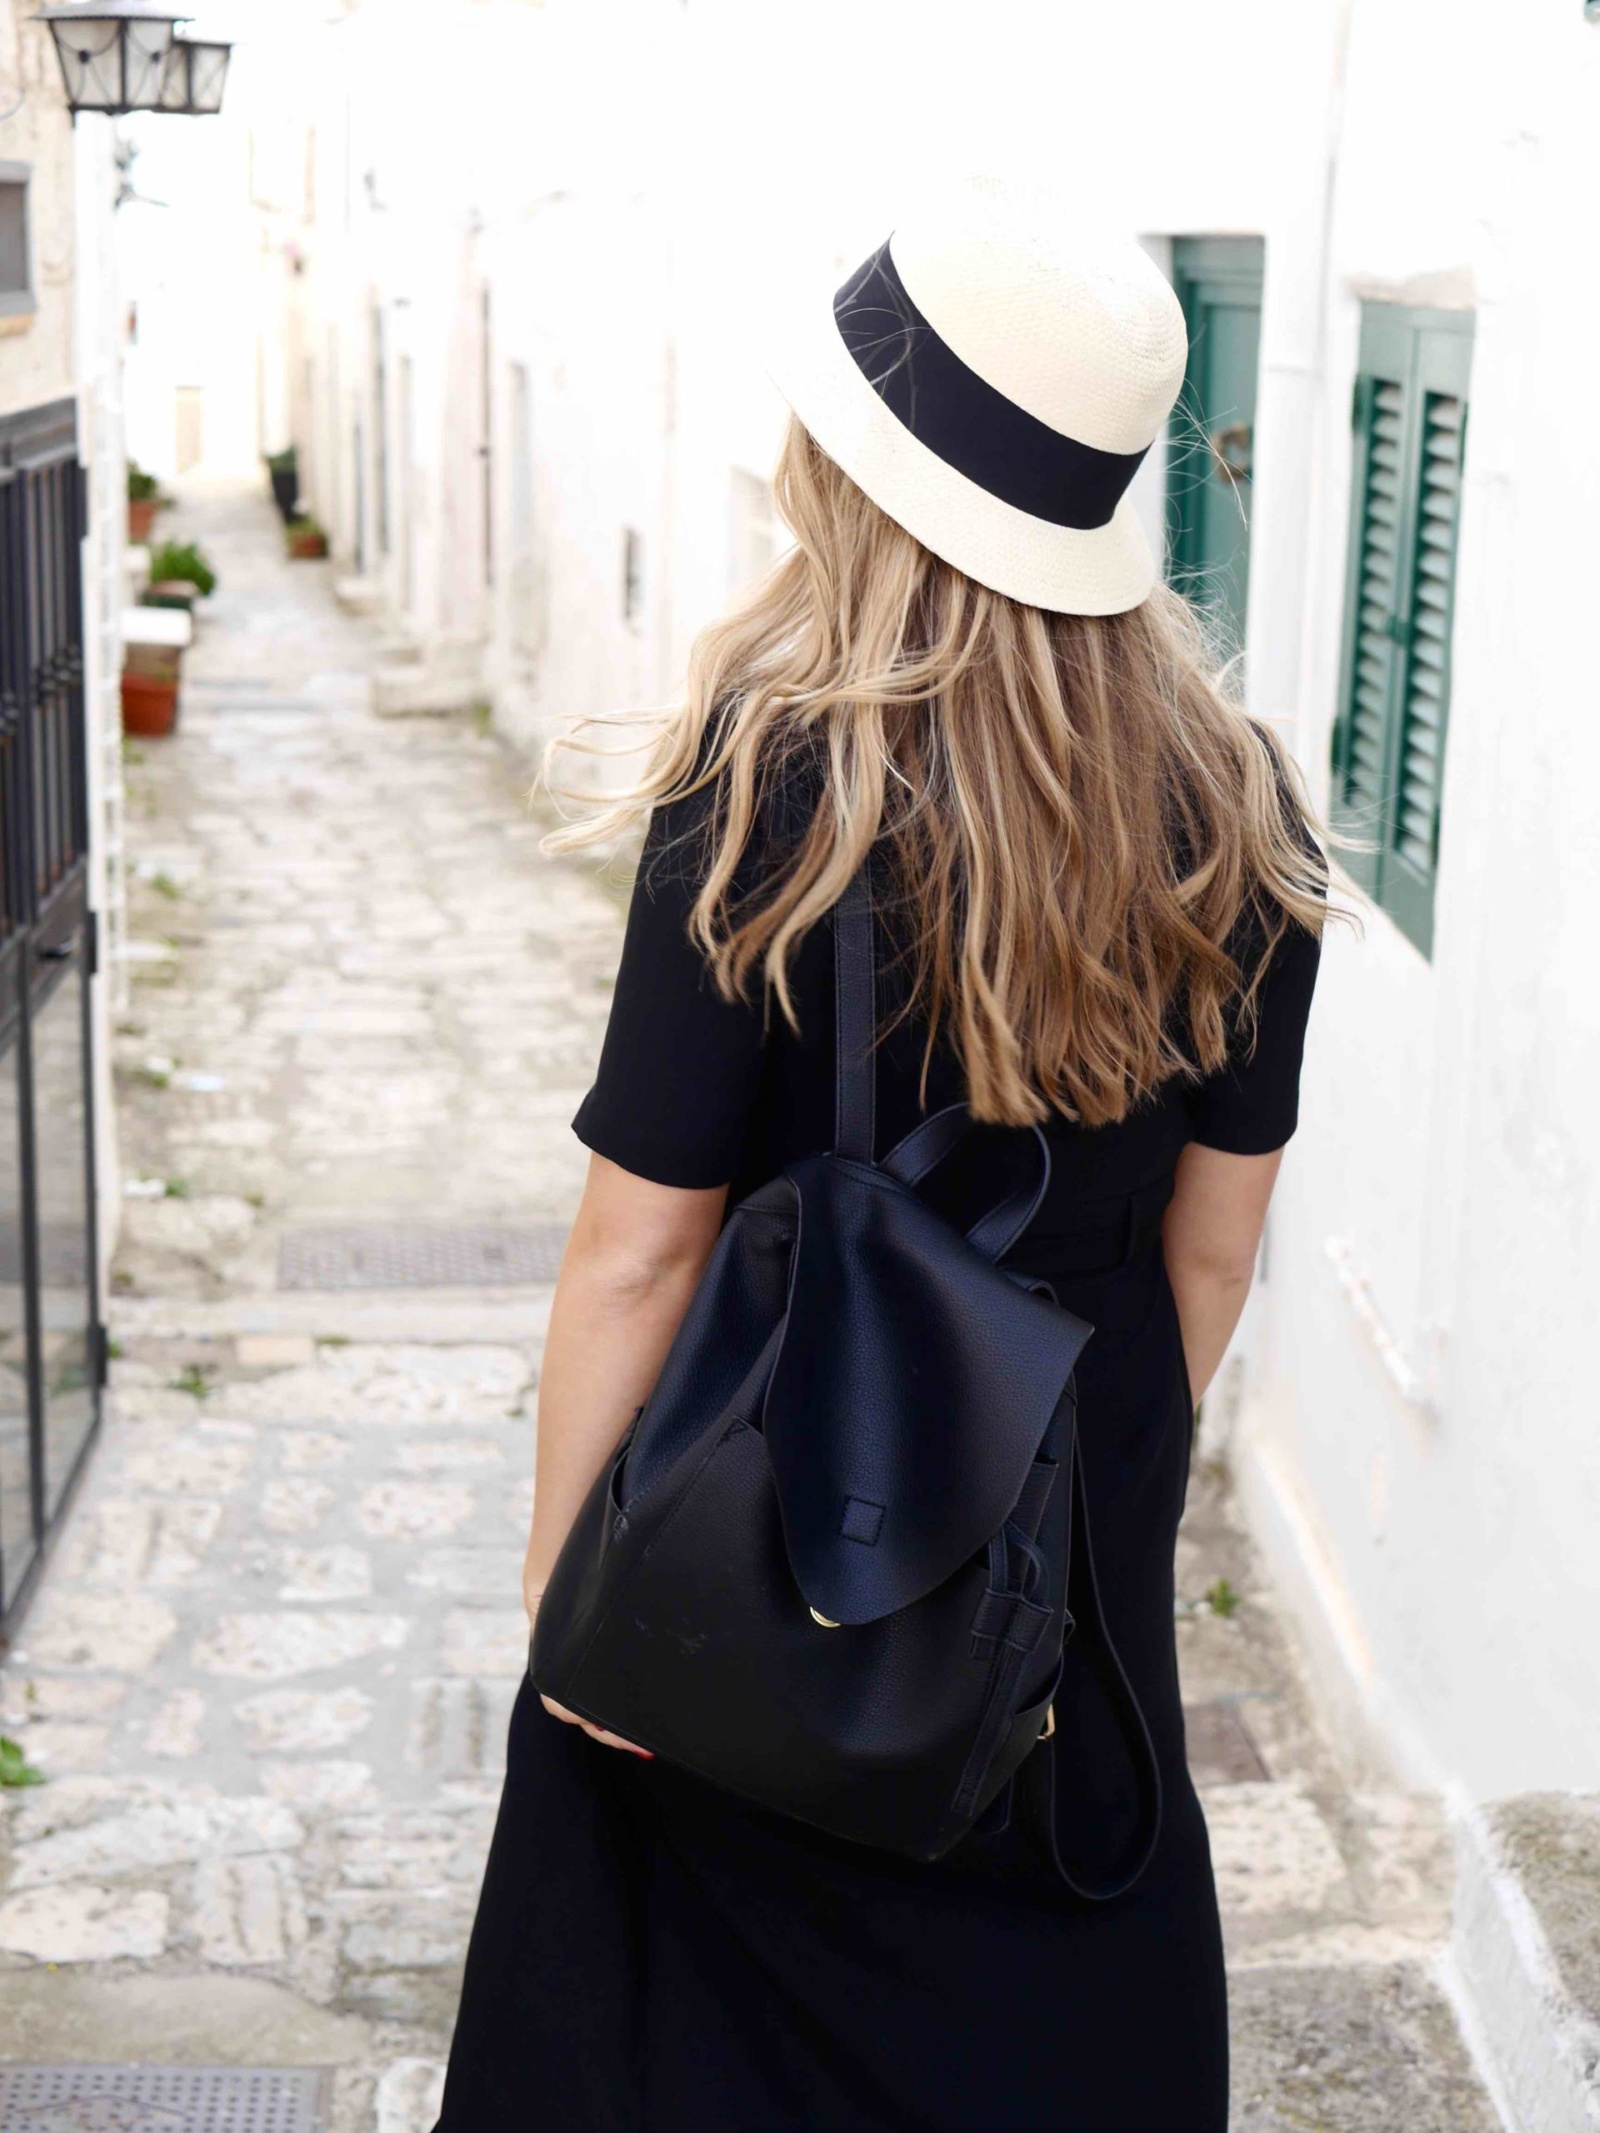 the-travelista-jess-gibson-travel-blogger-puglia-fedora-backpack